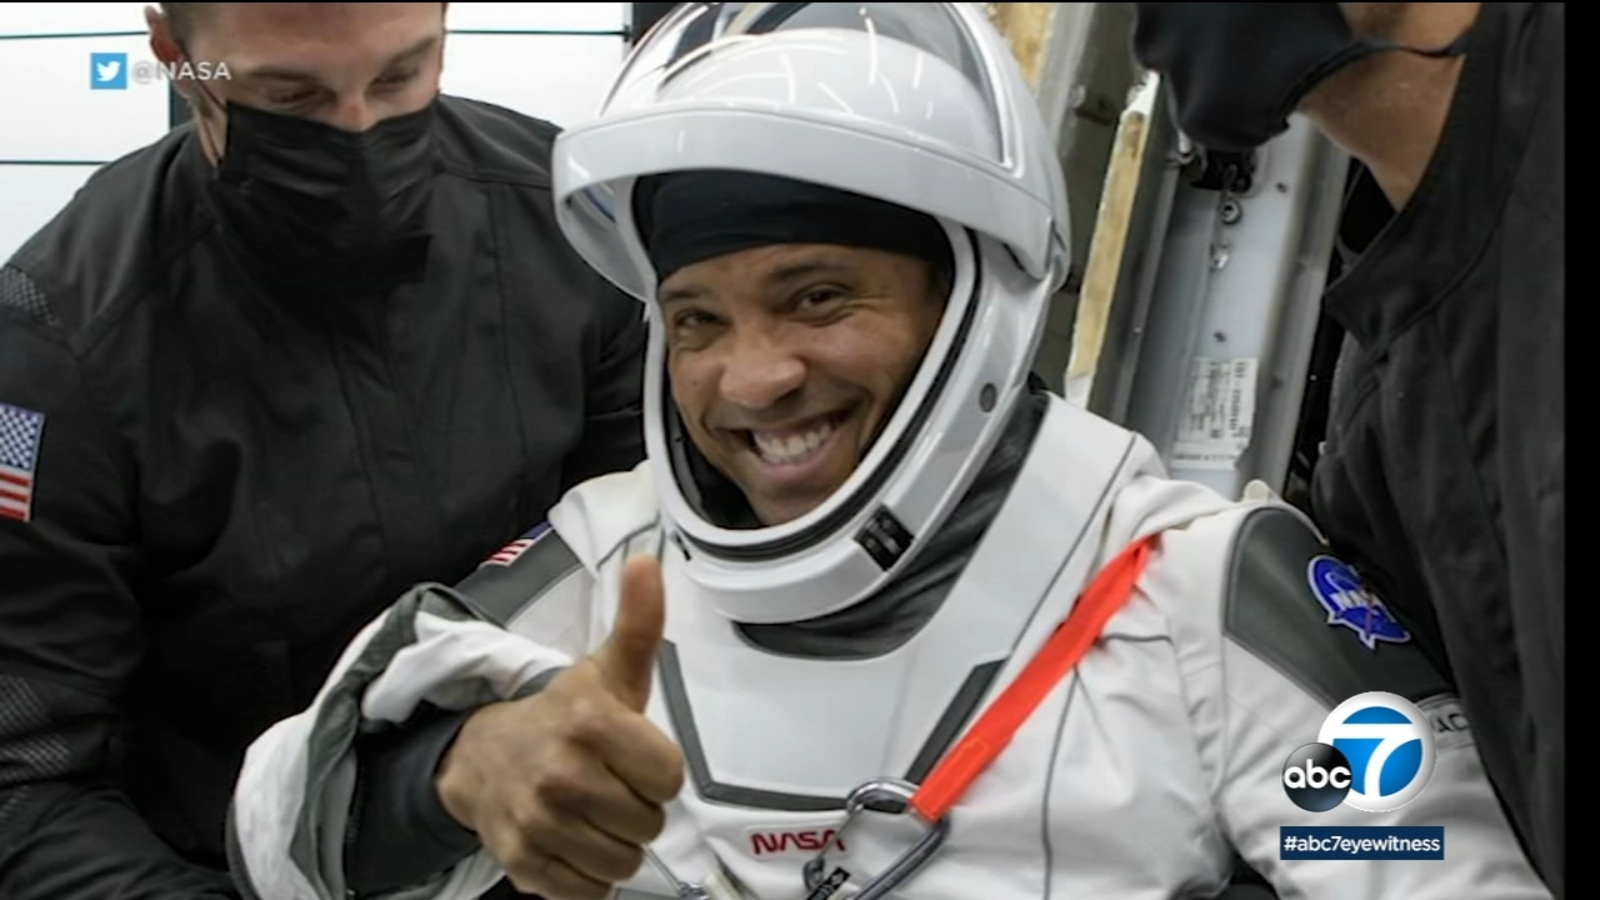 SoCal native Victor Glover, 1st Black astronaut on ISS for extended stay, reflects on mission